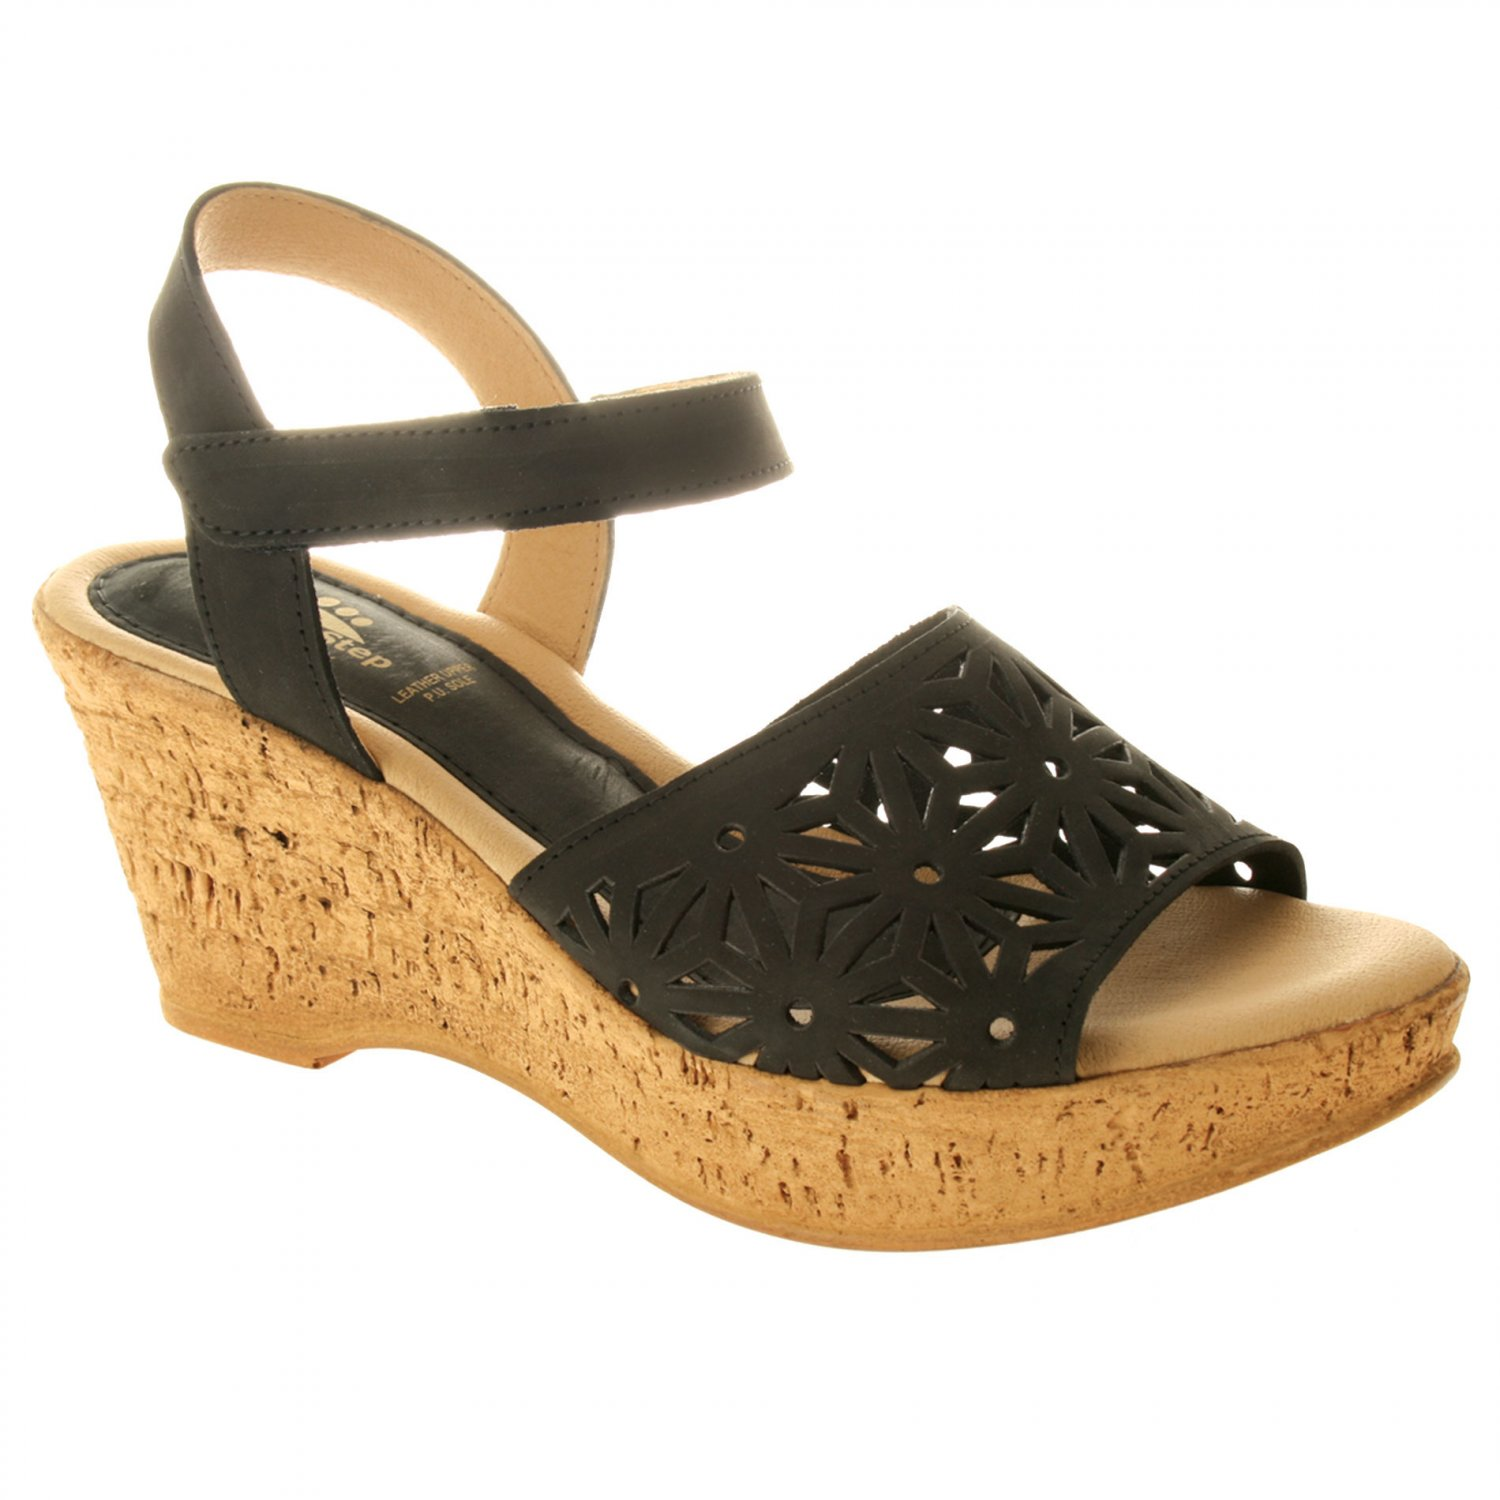 Spring Step AMELIE Sandals Shoes All Sizes & Colors $6